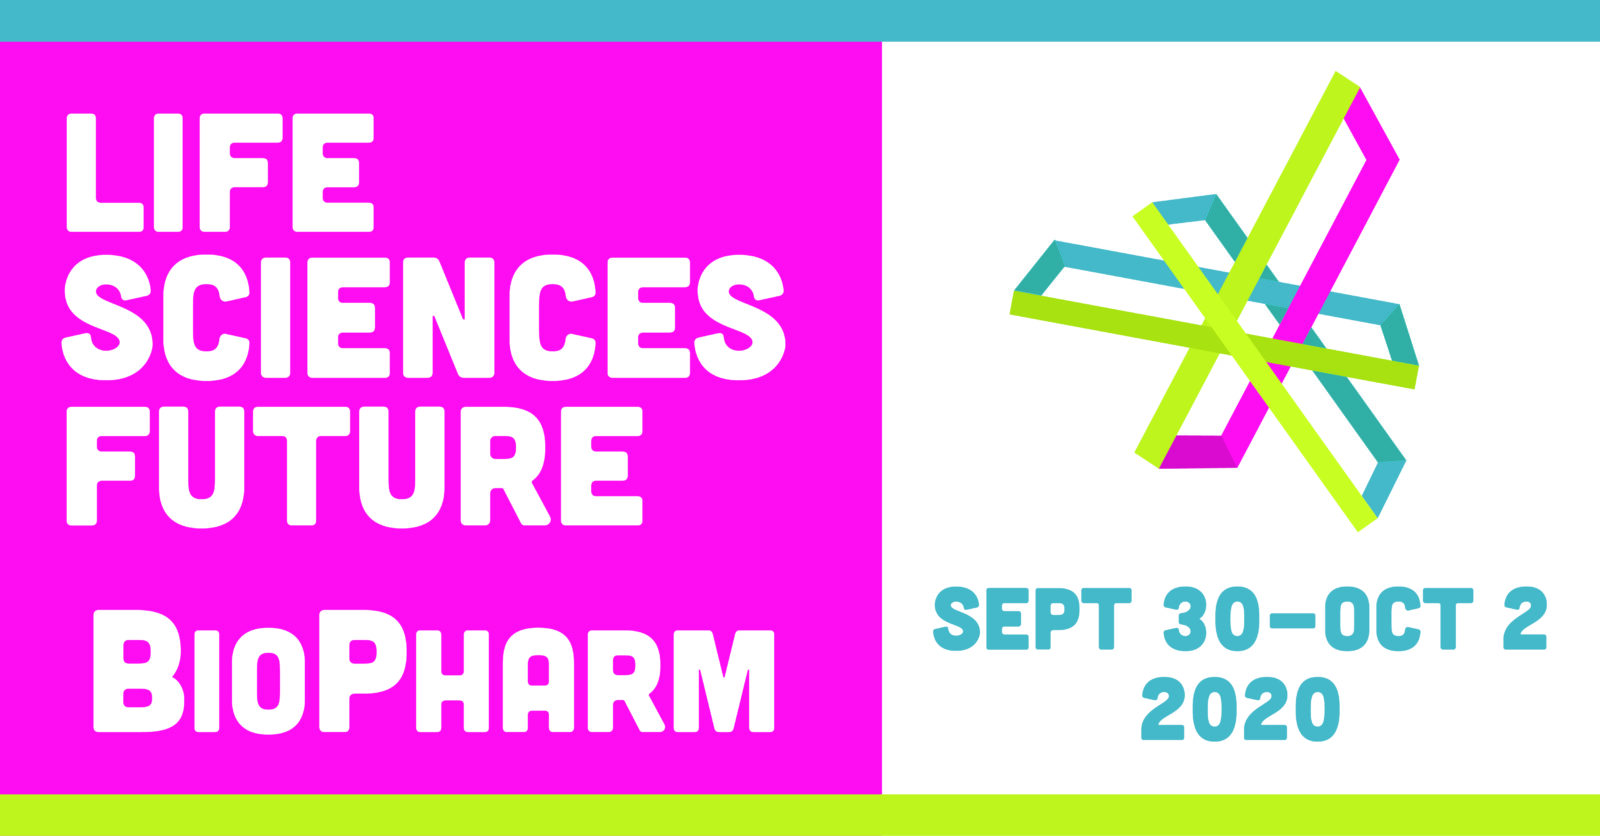 Life Sciences Future BioPharma